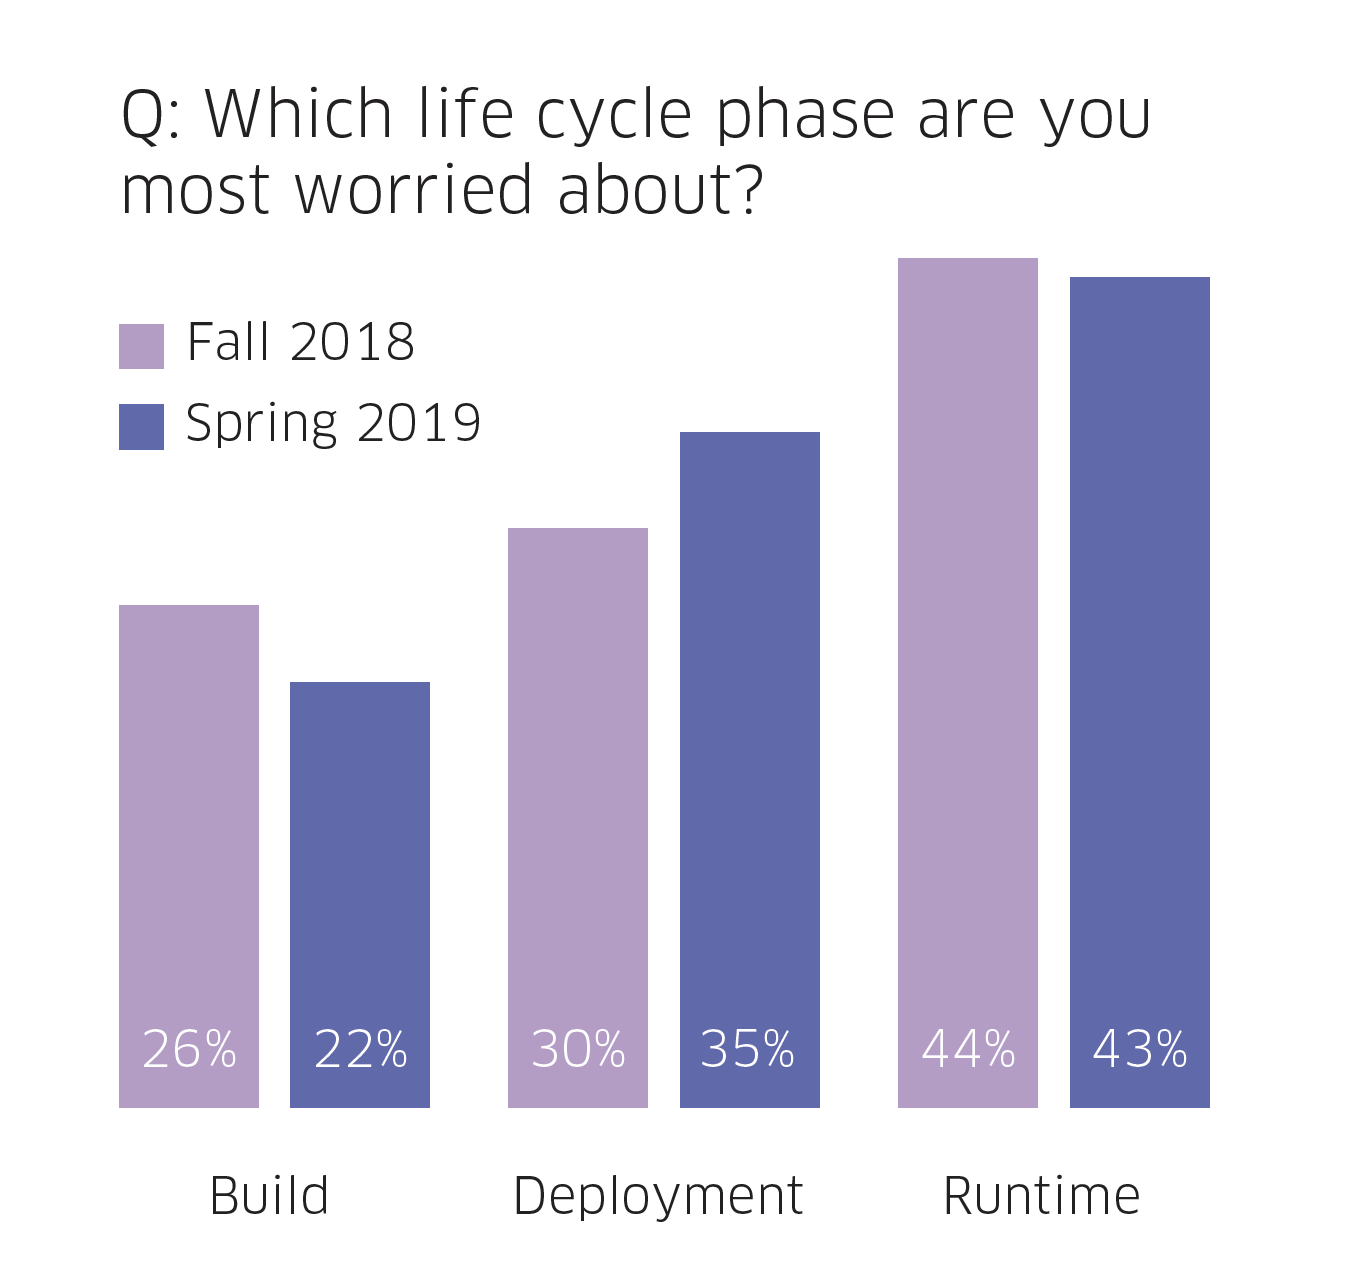 Lifecycle concerns